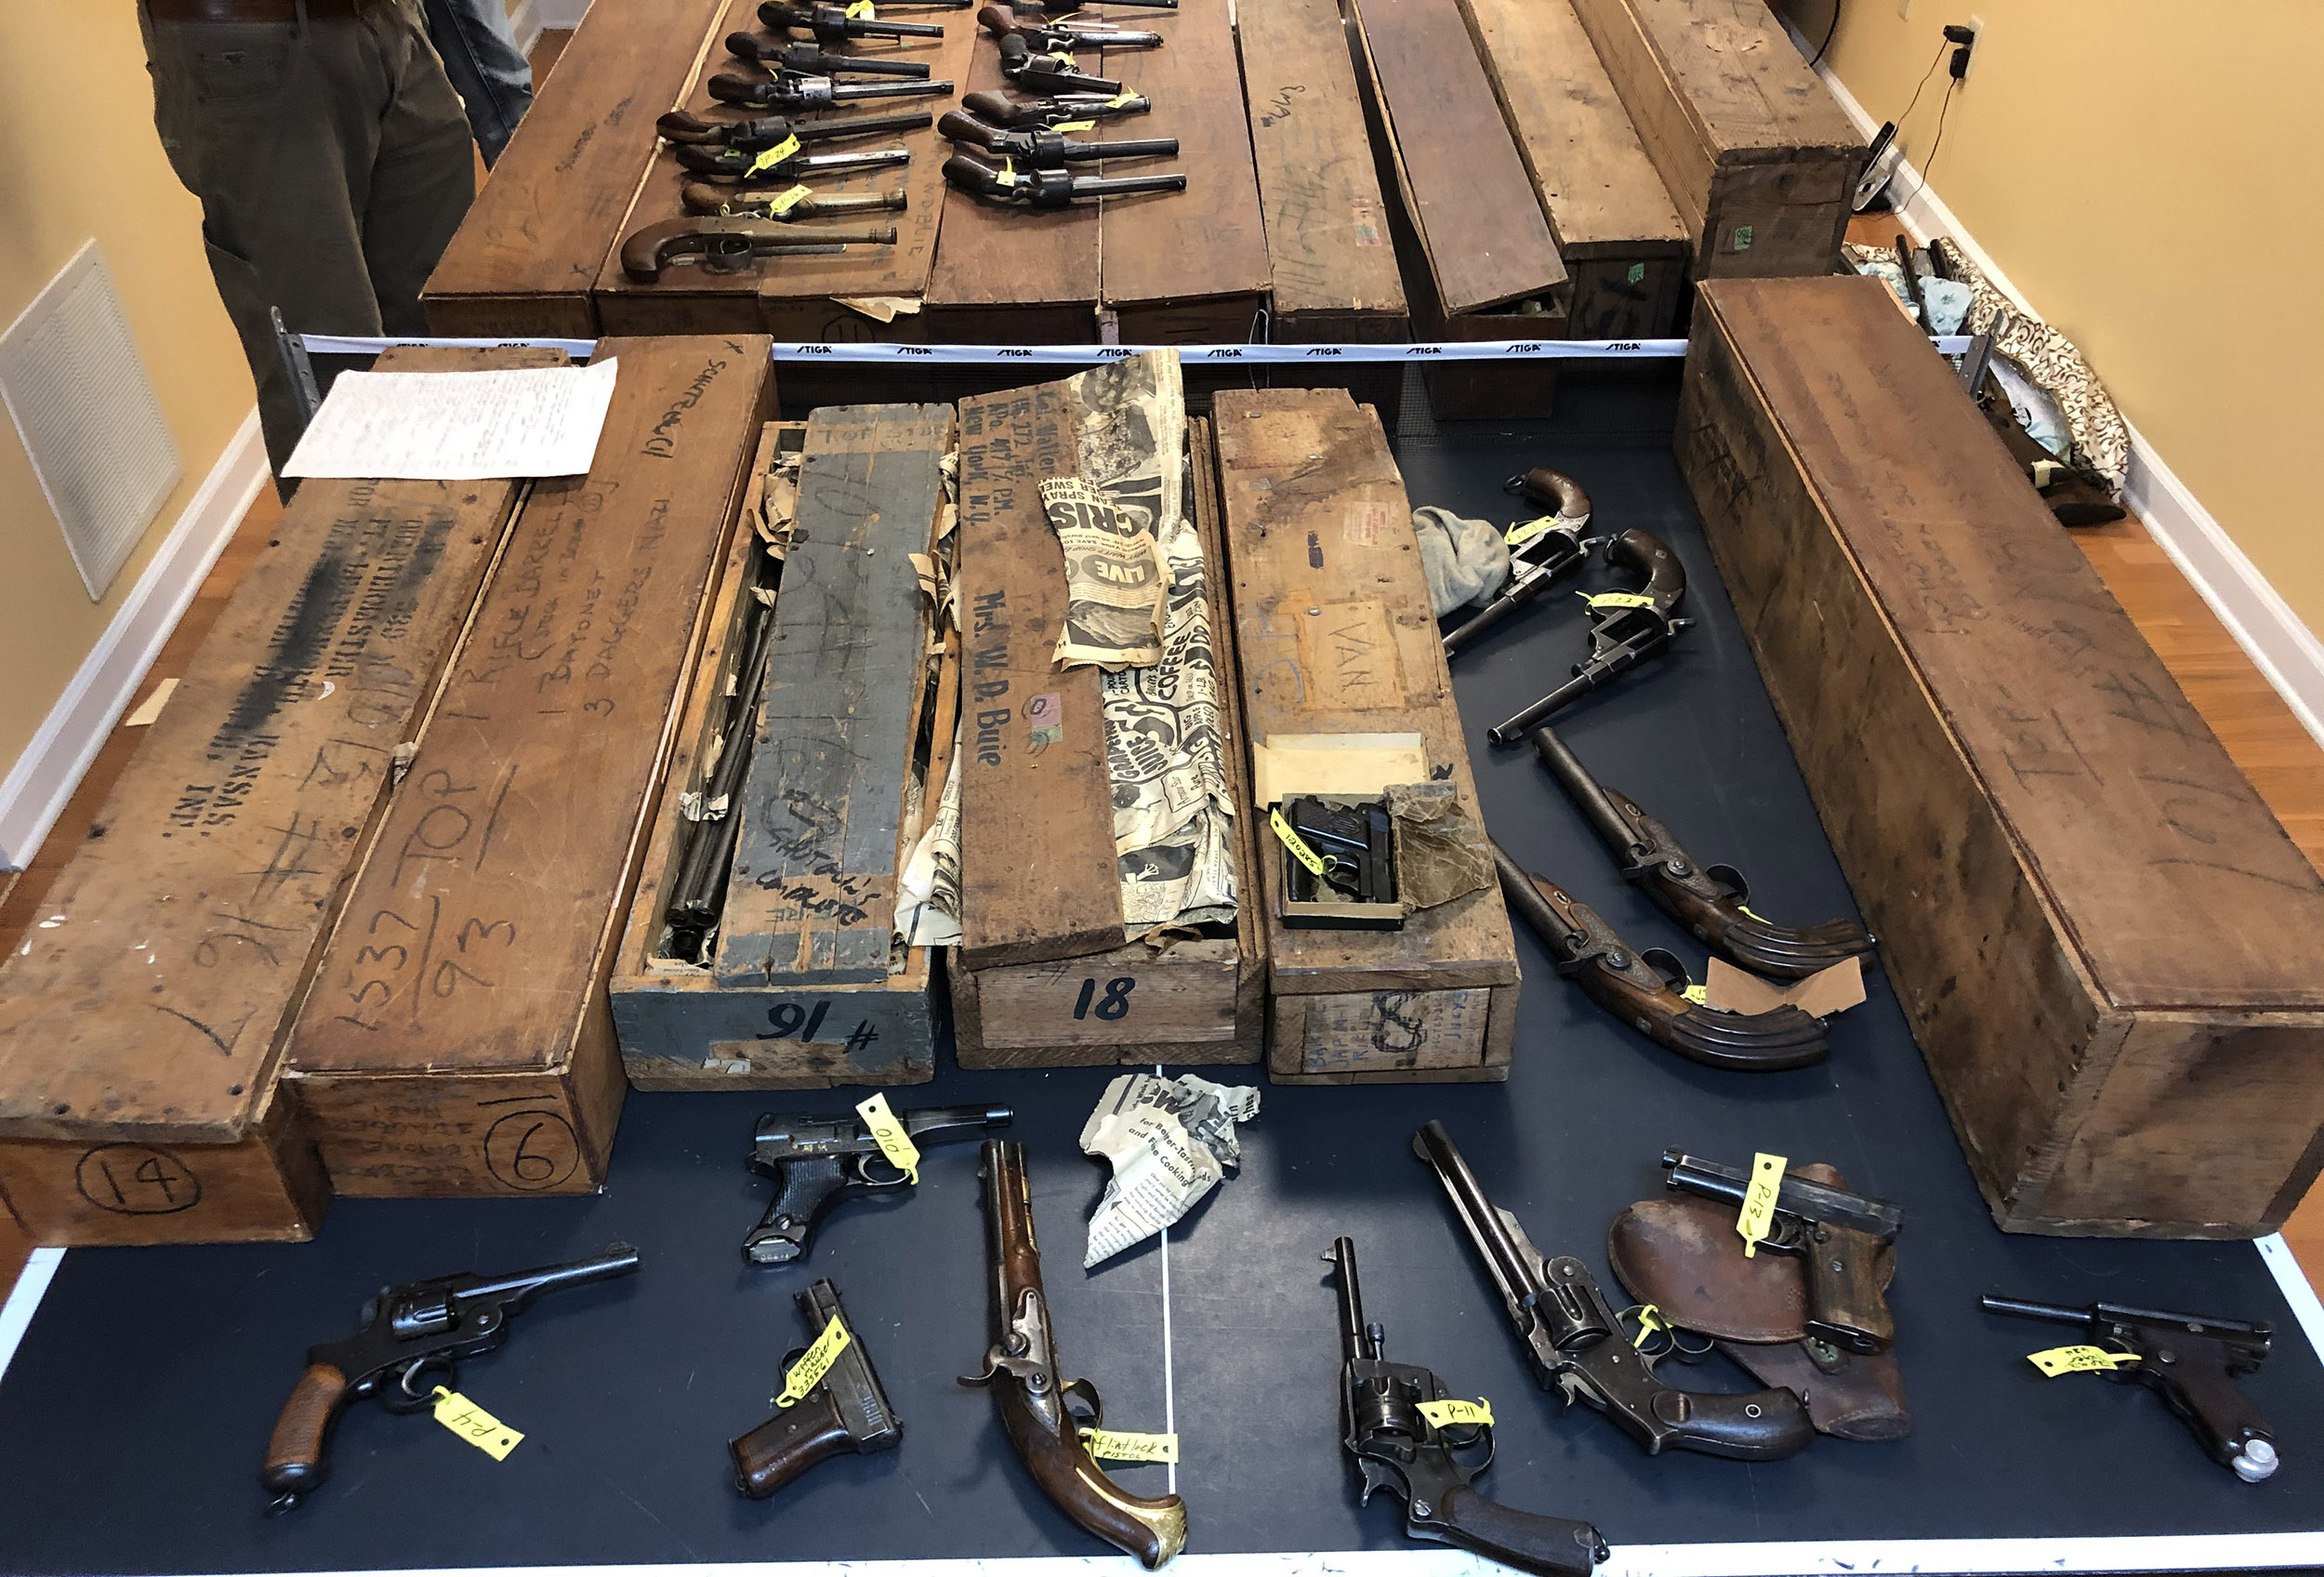 Colonel Walter Buie   WWII War Trophy Firearm Collection Displayed in Original WWII Wooden Shipping Crates